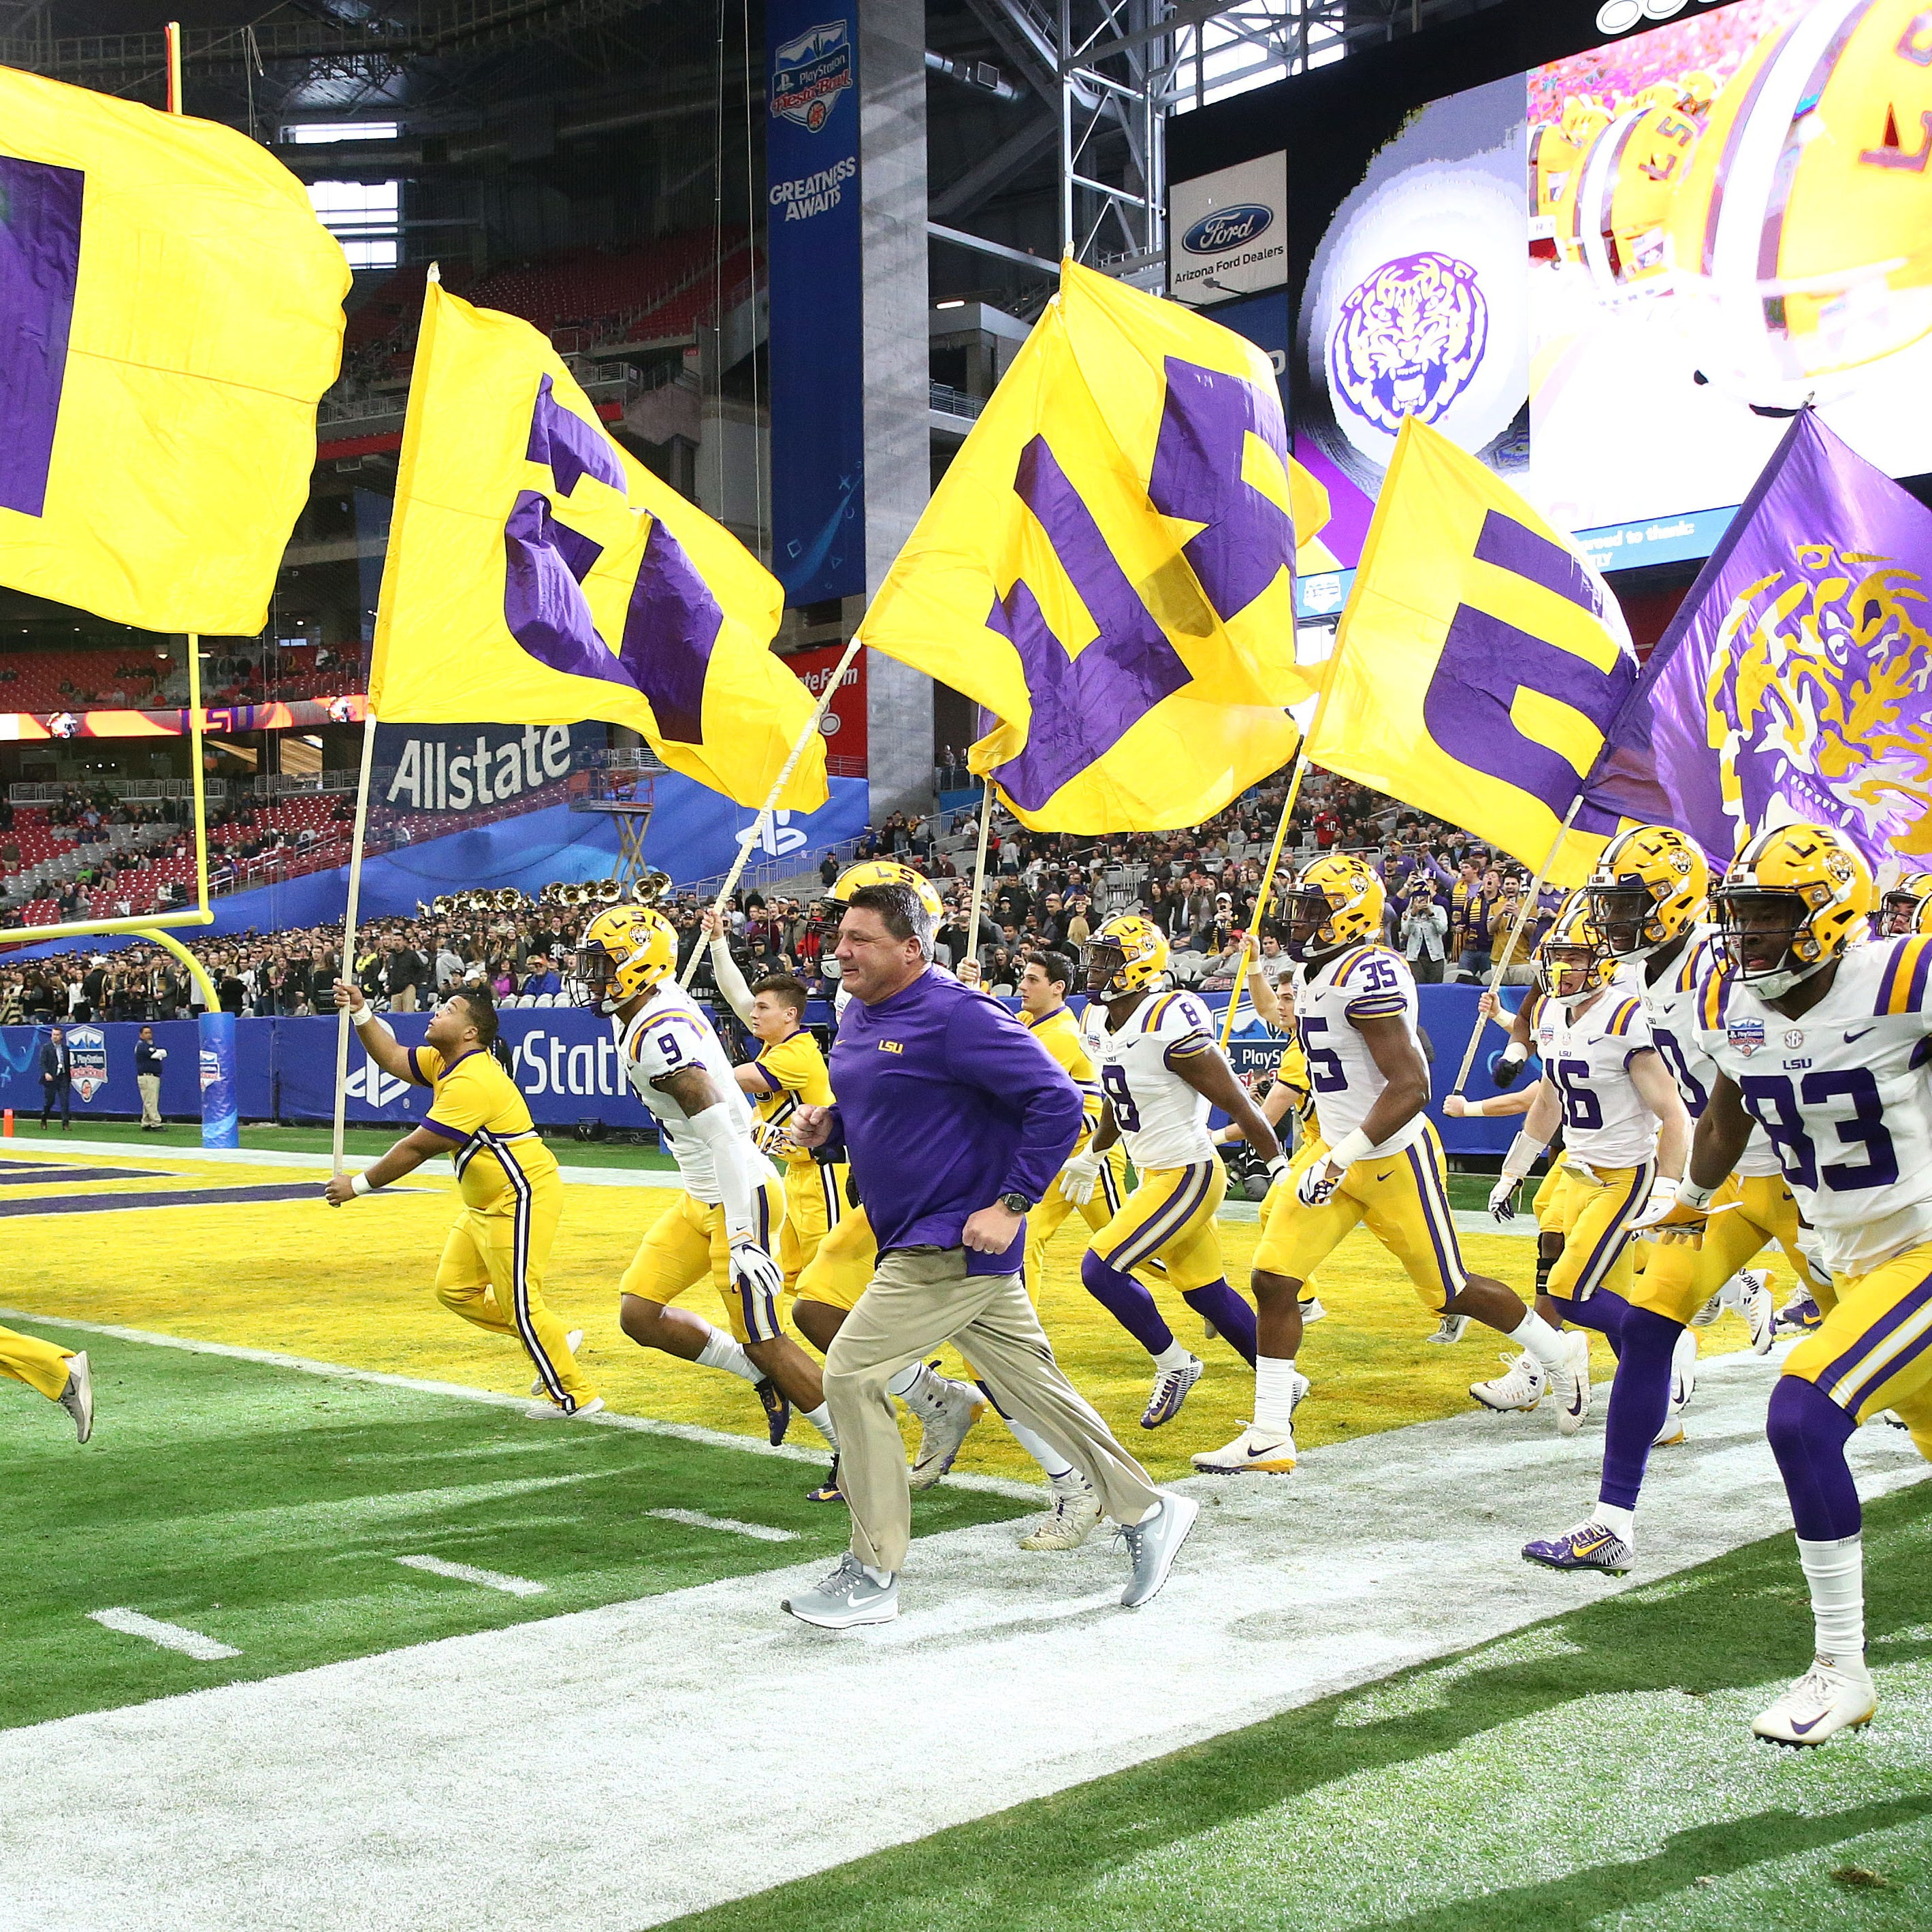 LSU shakes off rust, ends Central Florida's 25-game win streak in PlayStation Fiesta Bowl